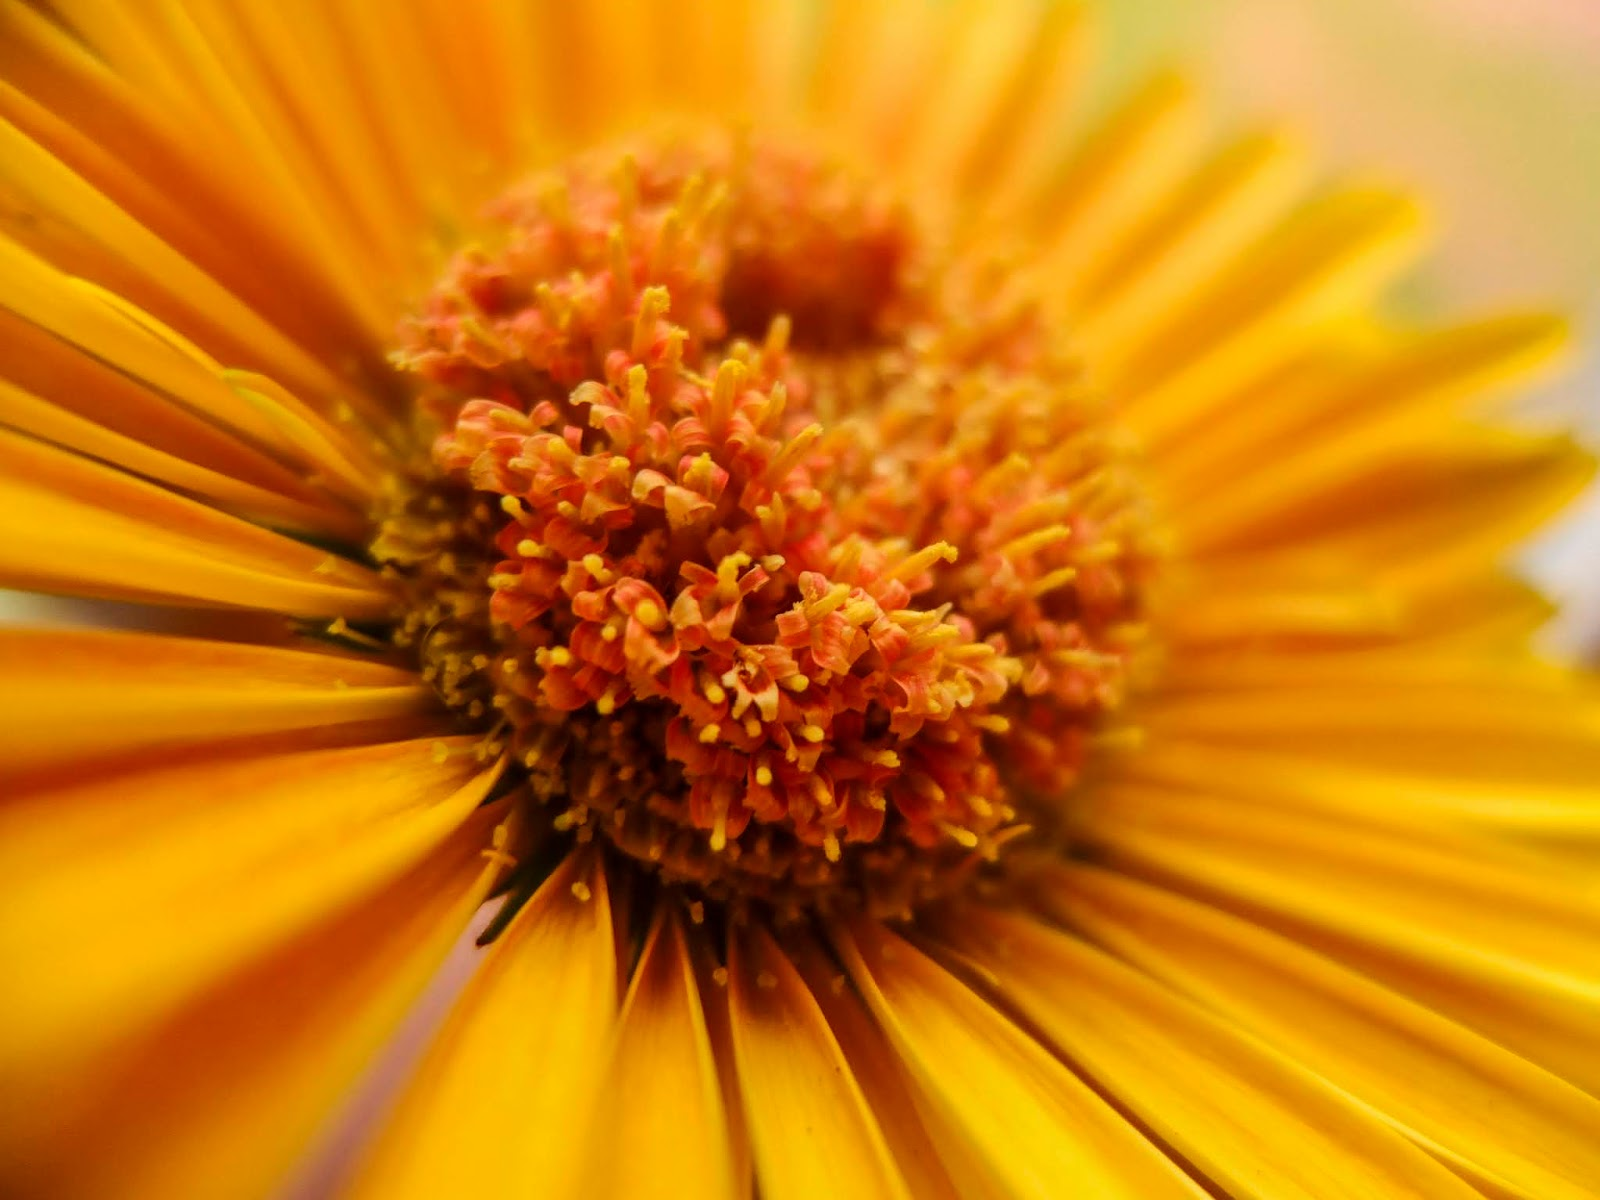 A close up of the center of an orange Gerbera Daisy.